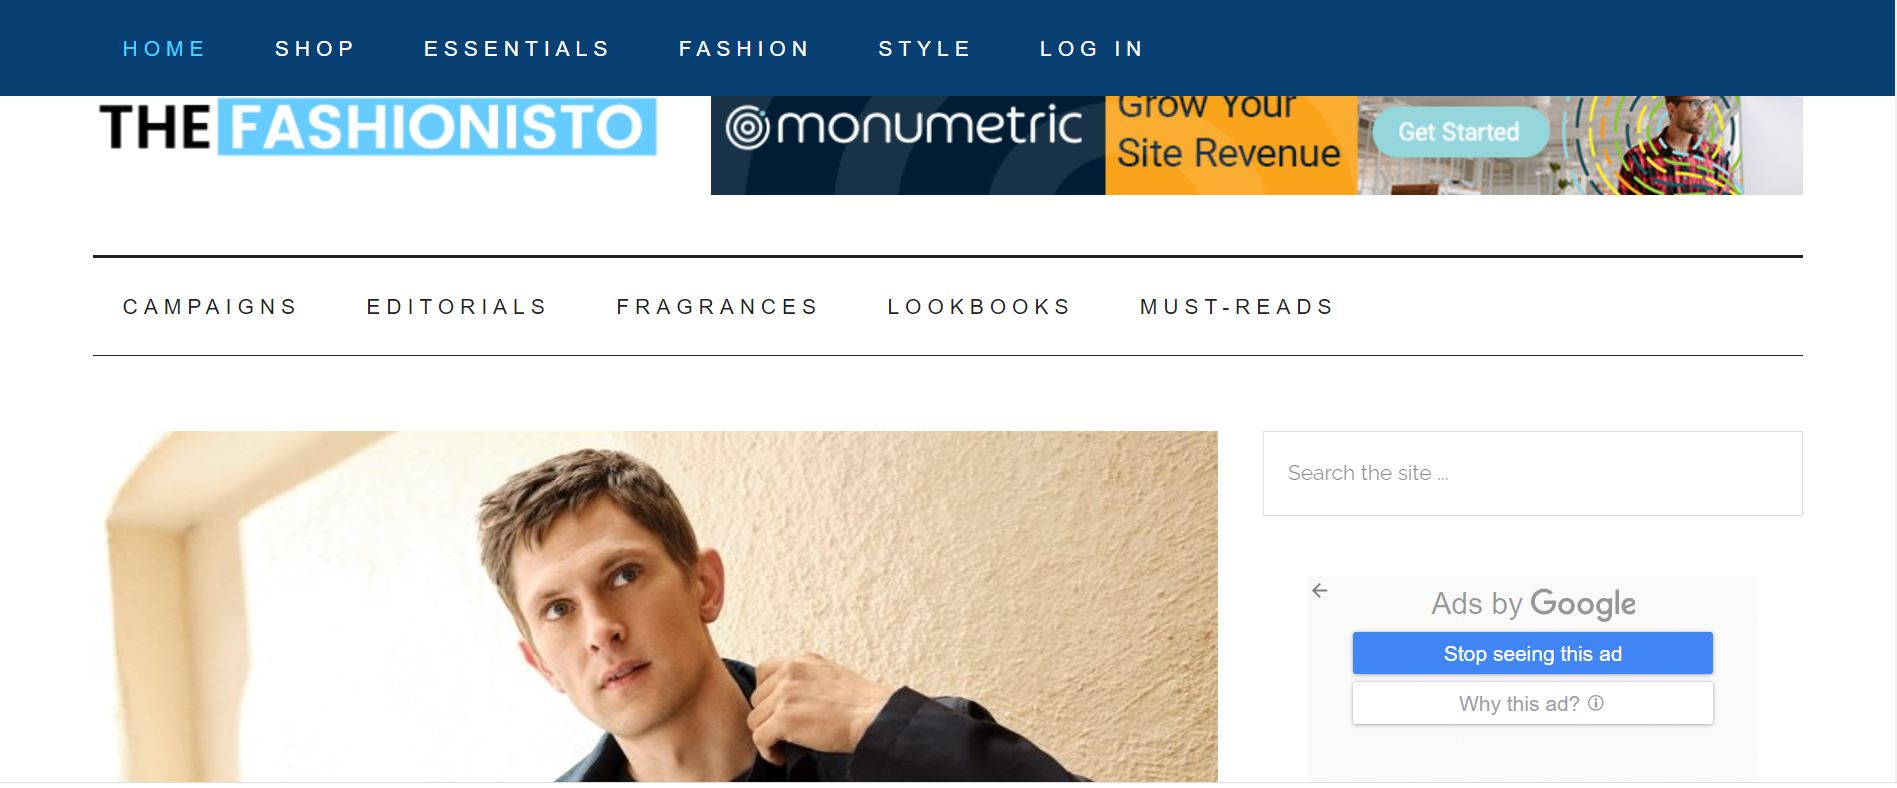 I will write and publish articles on thefashionisto